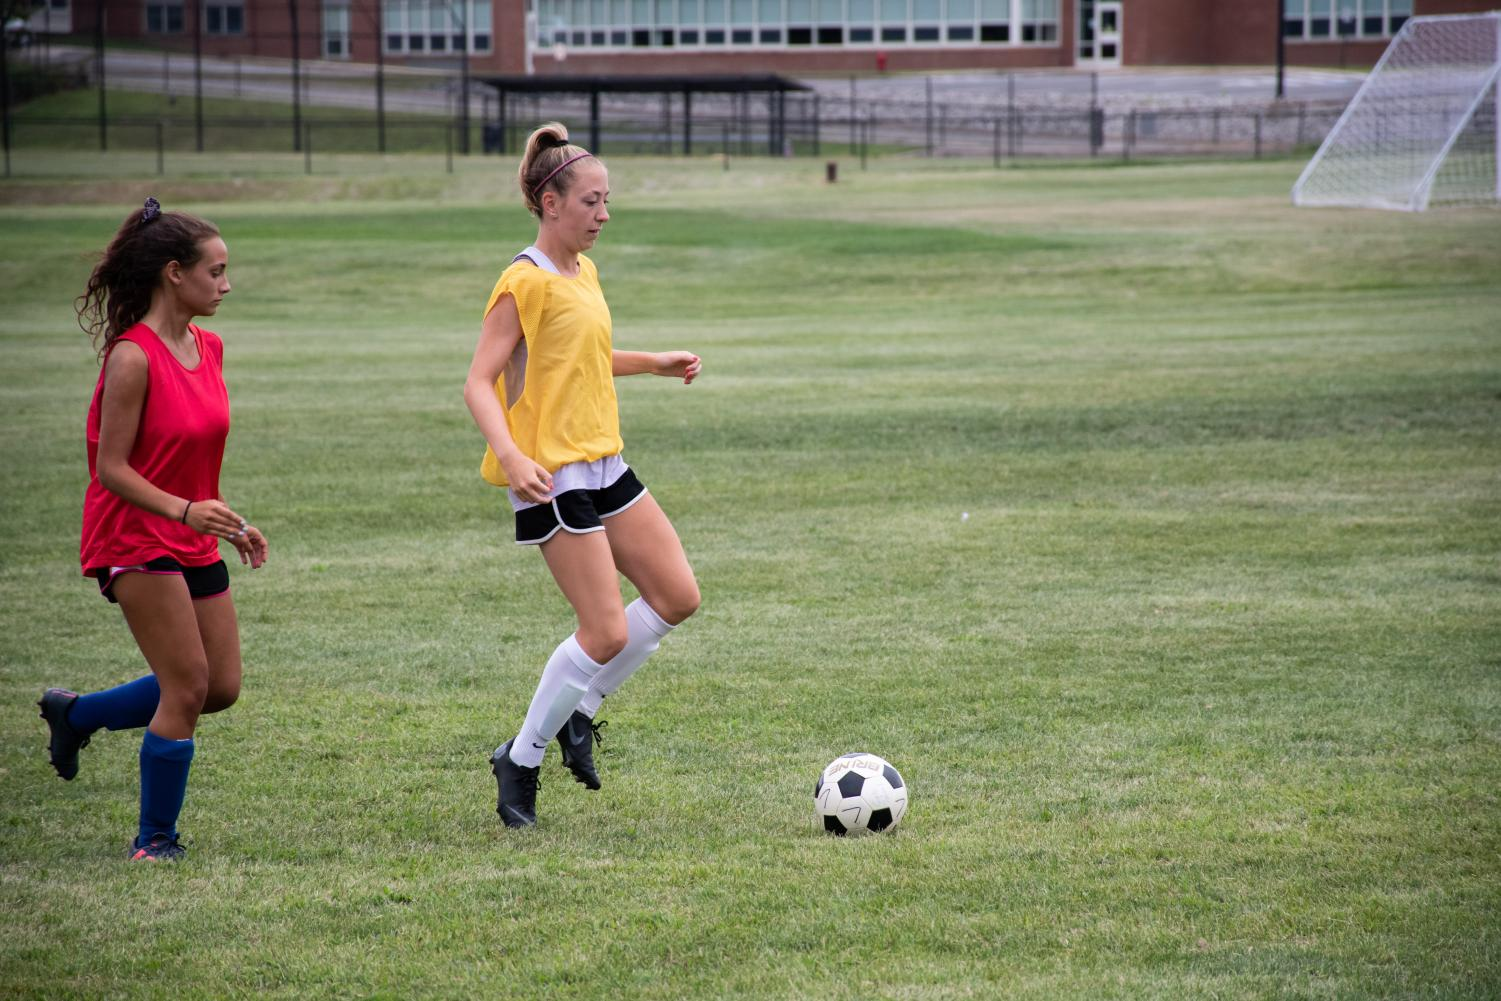 Senior+Megan+Keller+looks+to+control+the+ball+and+move+it+past+her+defender+to+advance+up+the+field.